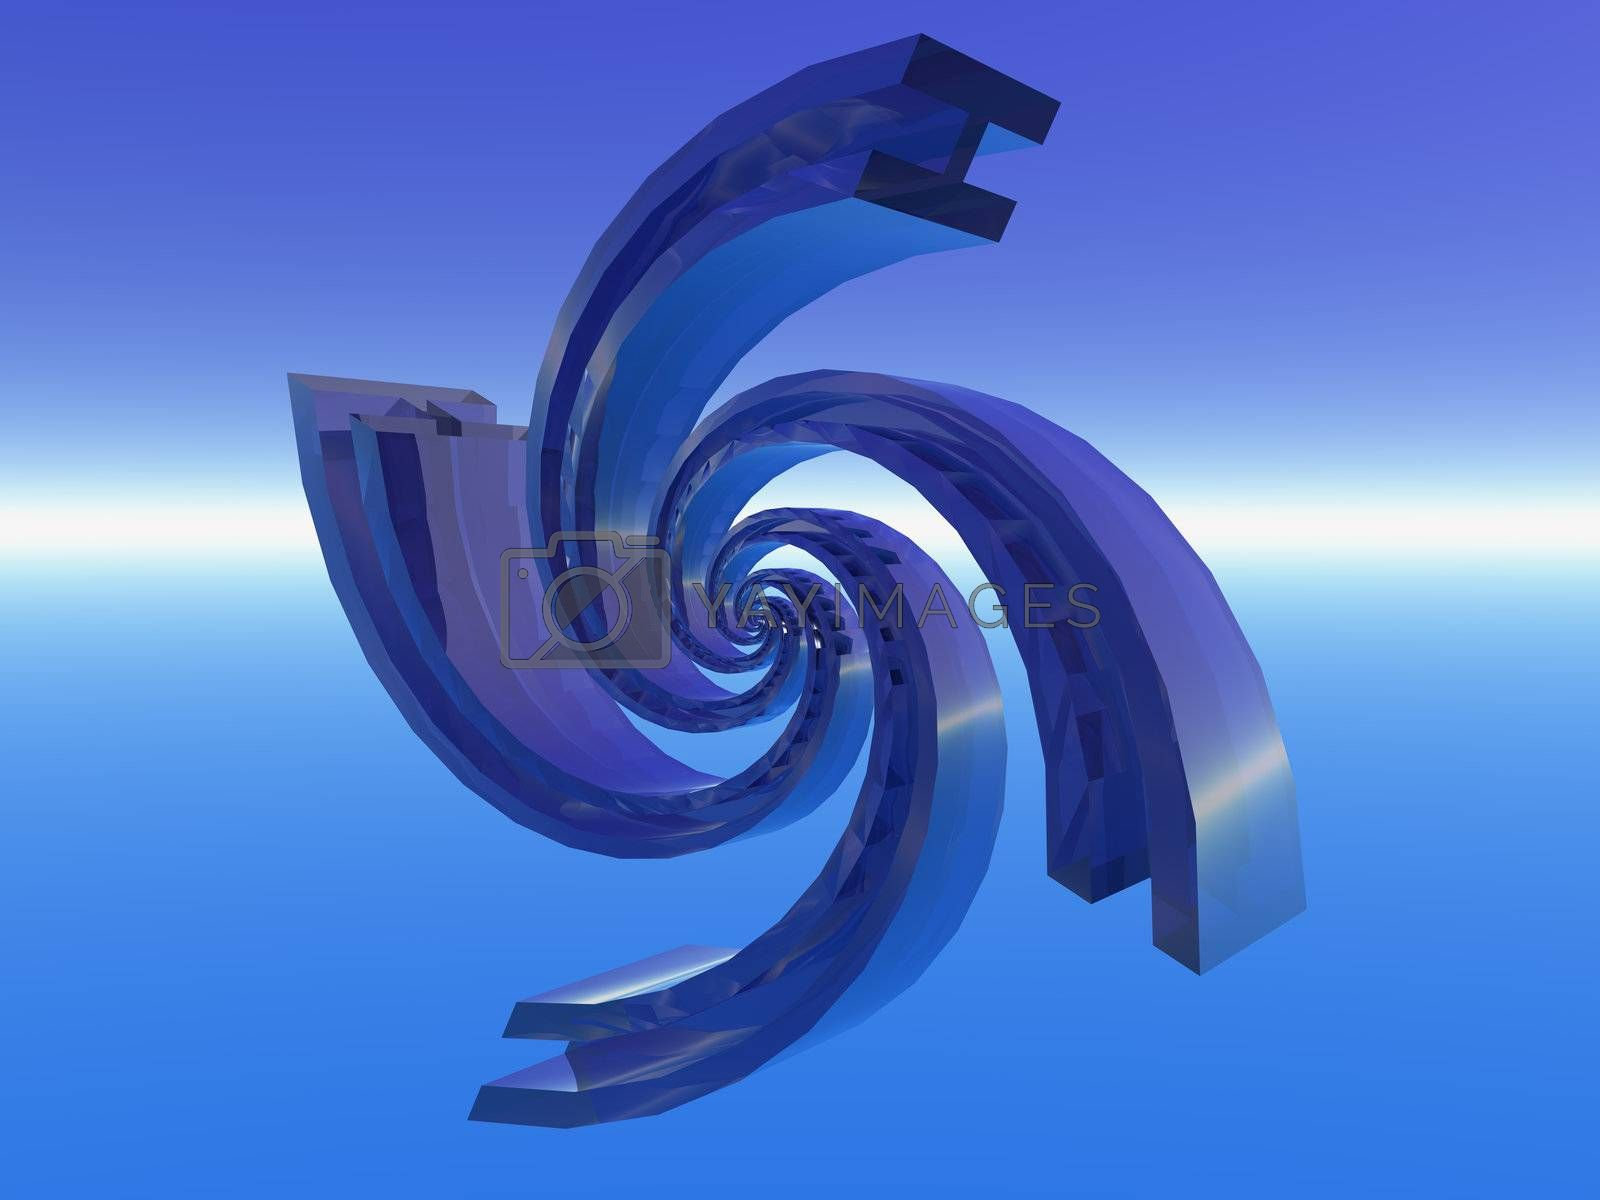 Royalty free image of spiral thing by drizzd